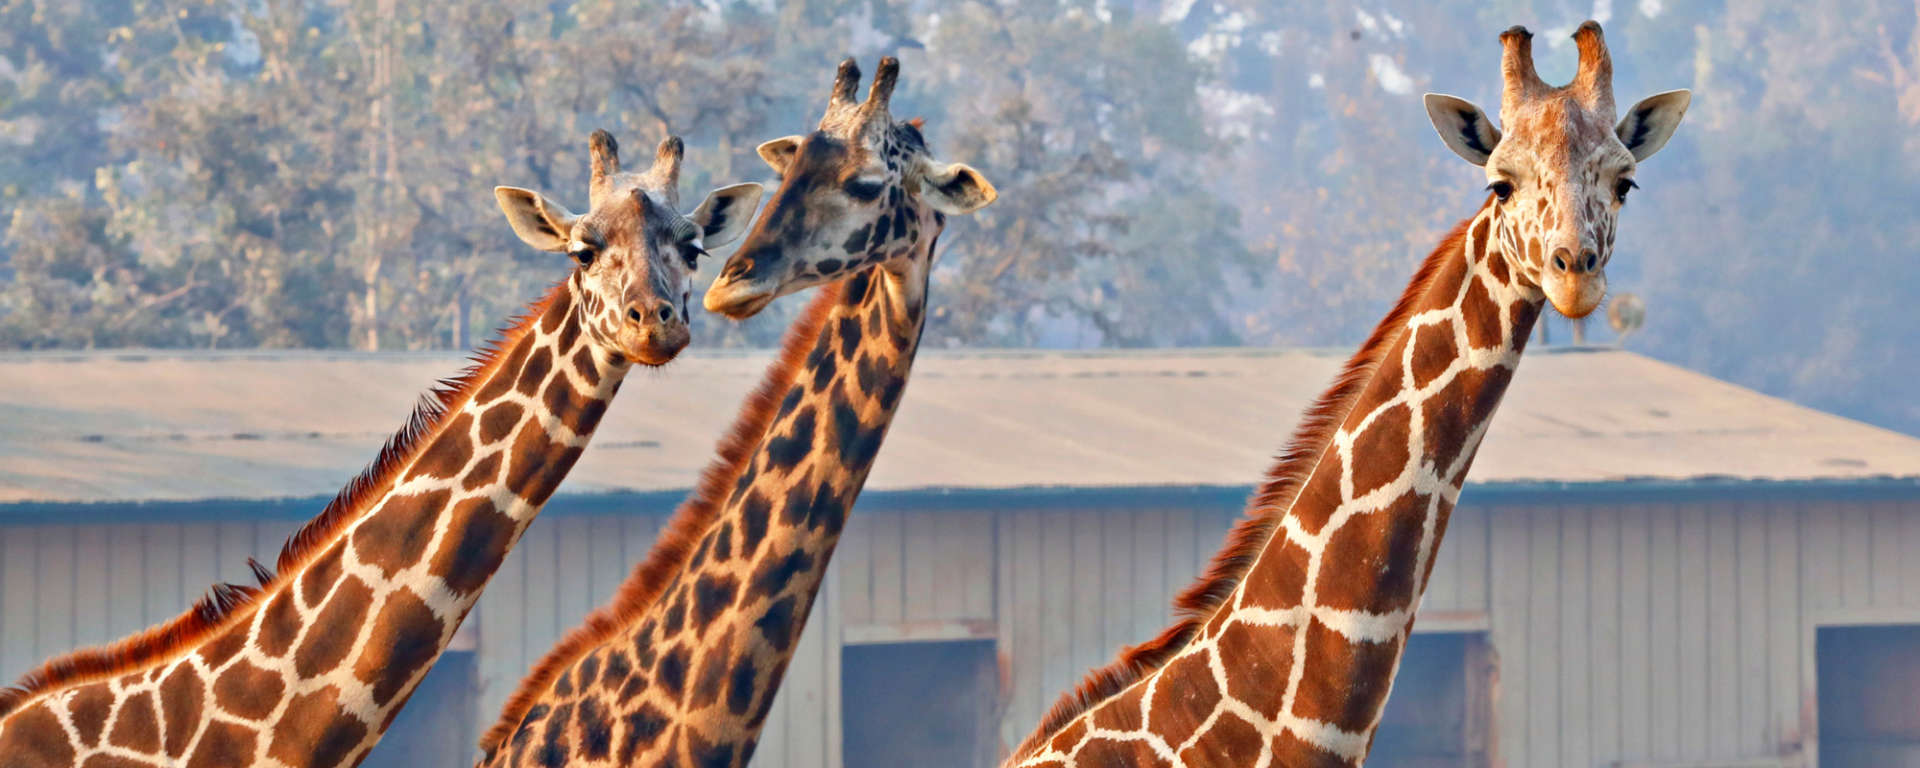 giraffes for fire update